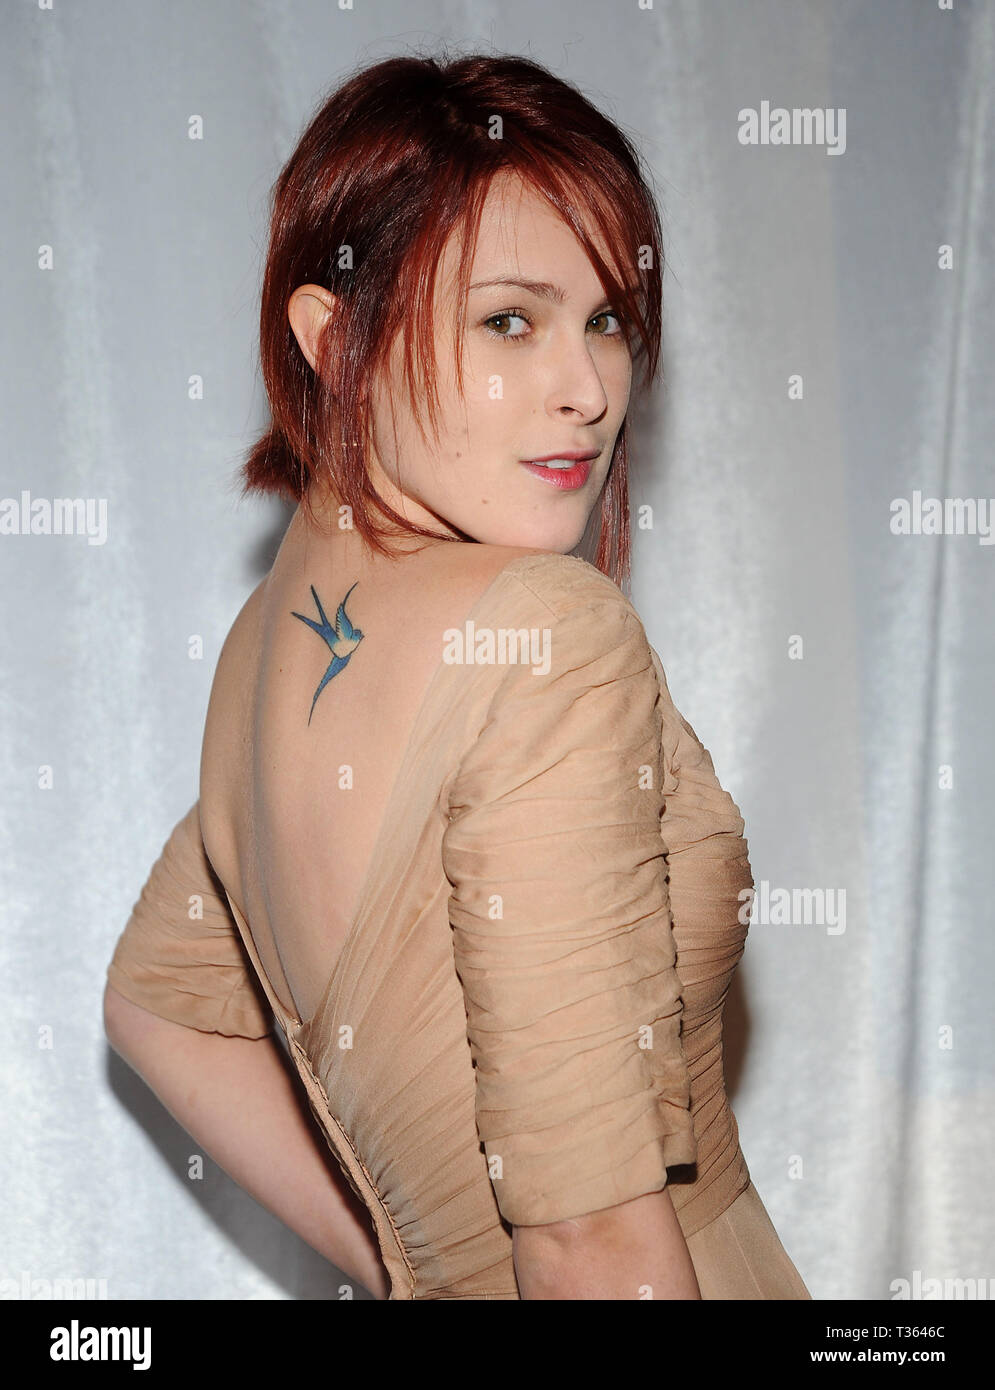 Alyssa Milano Tattoos Removed headshot smile eye contact over the shoulder tattoo stock